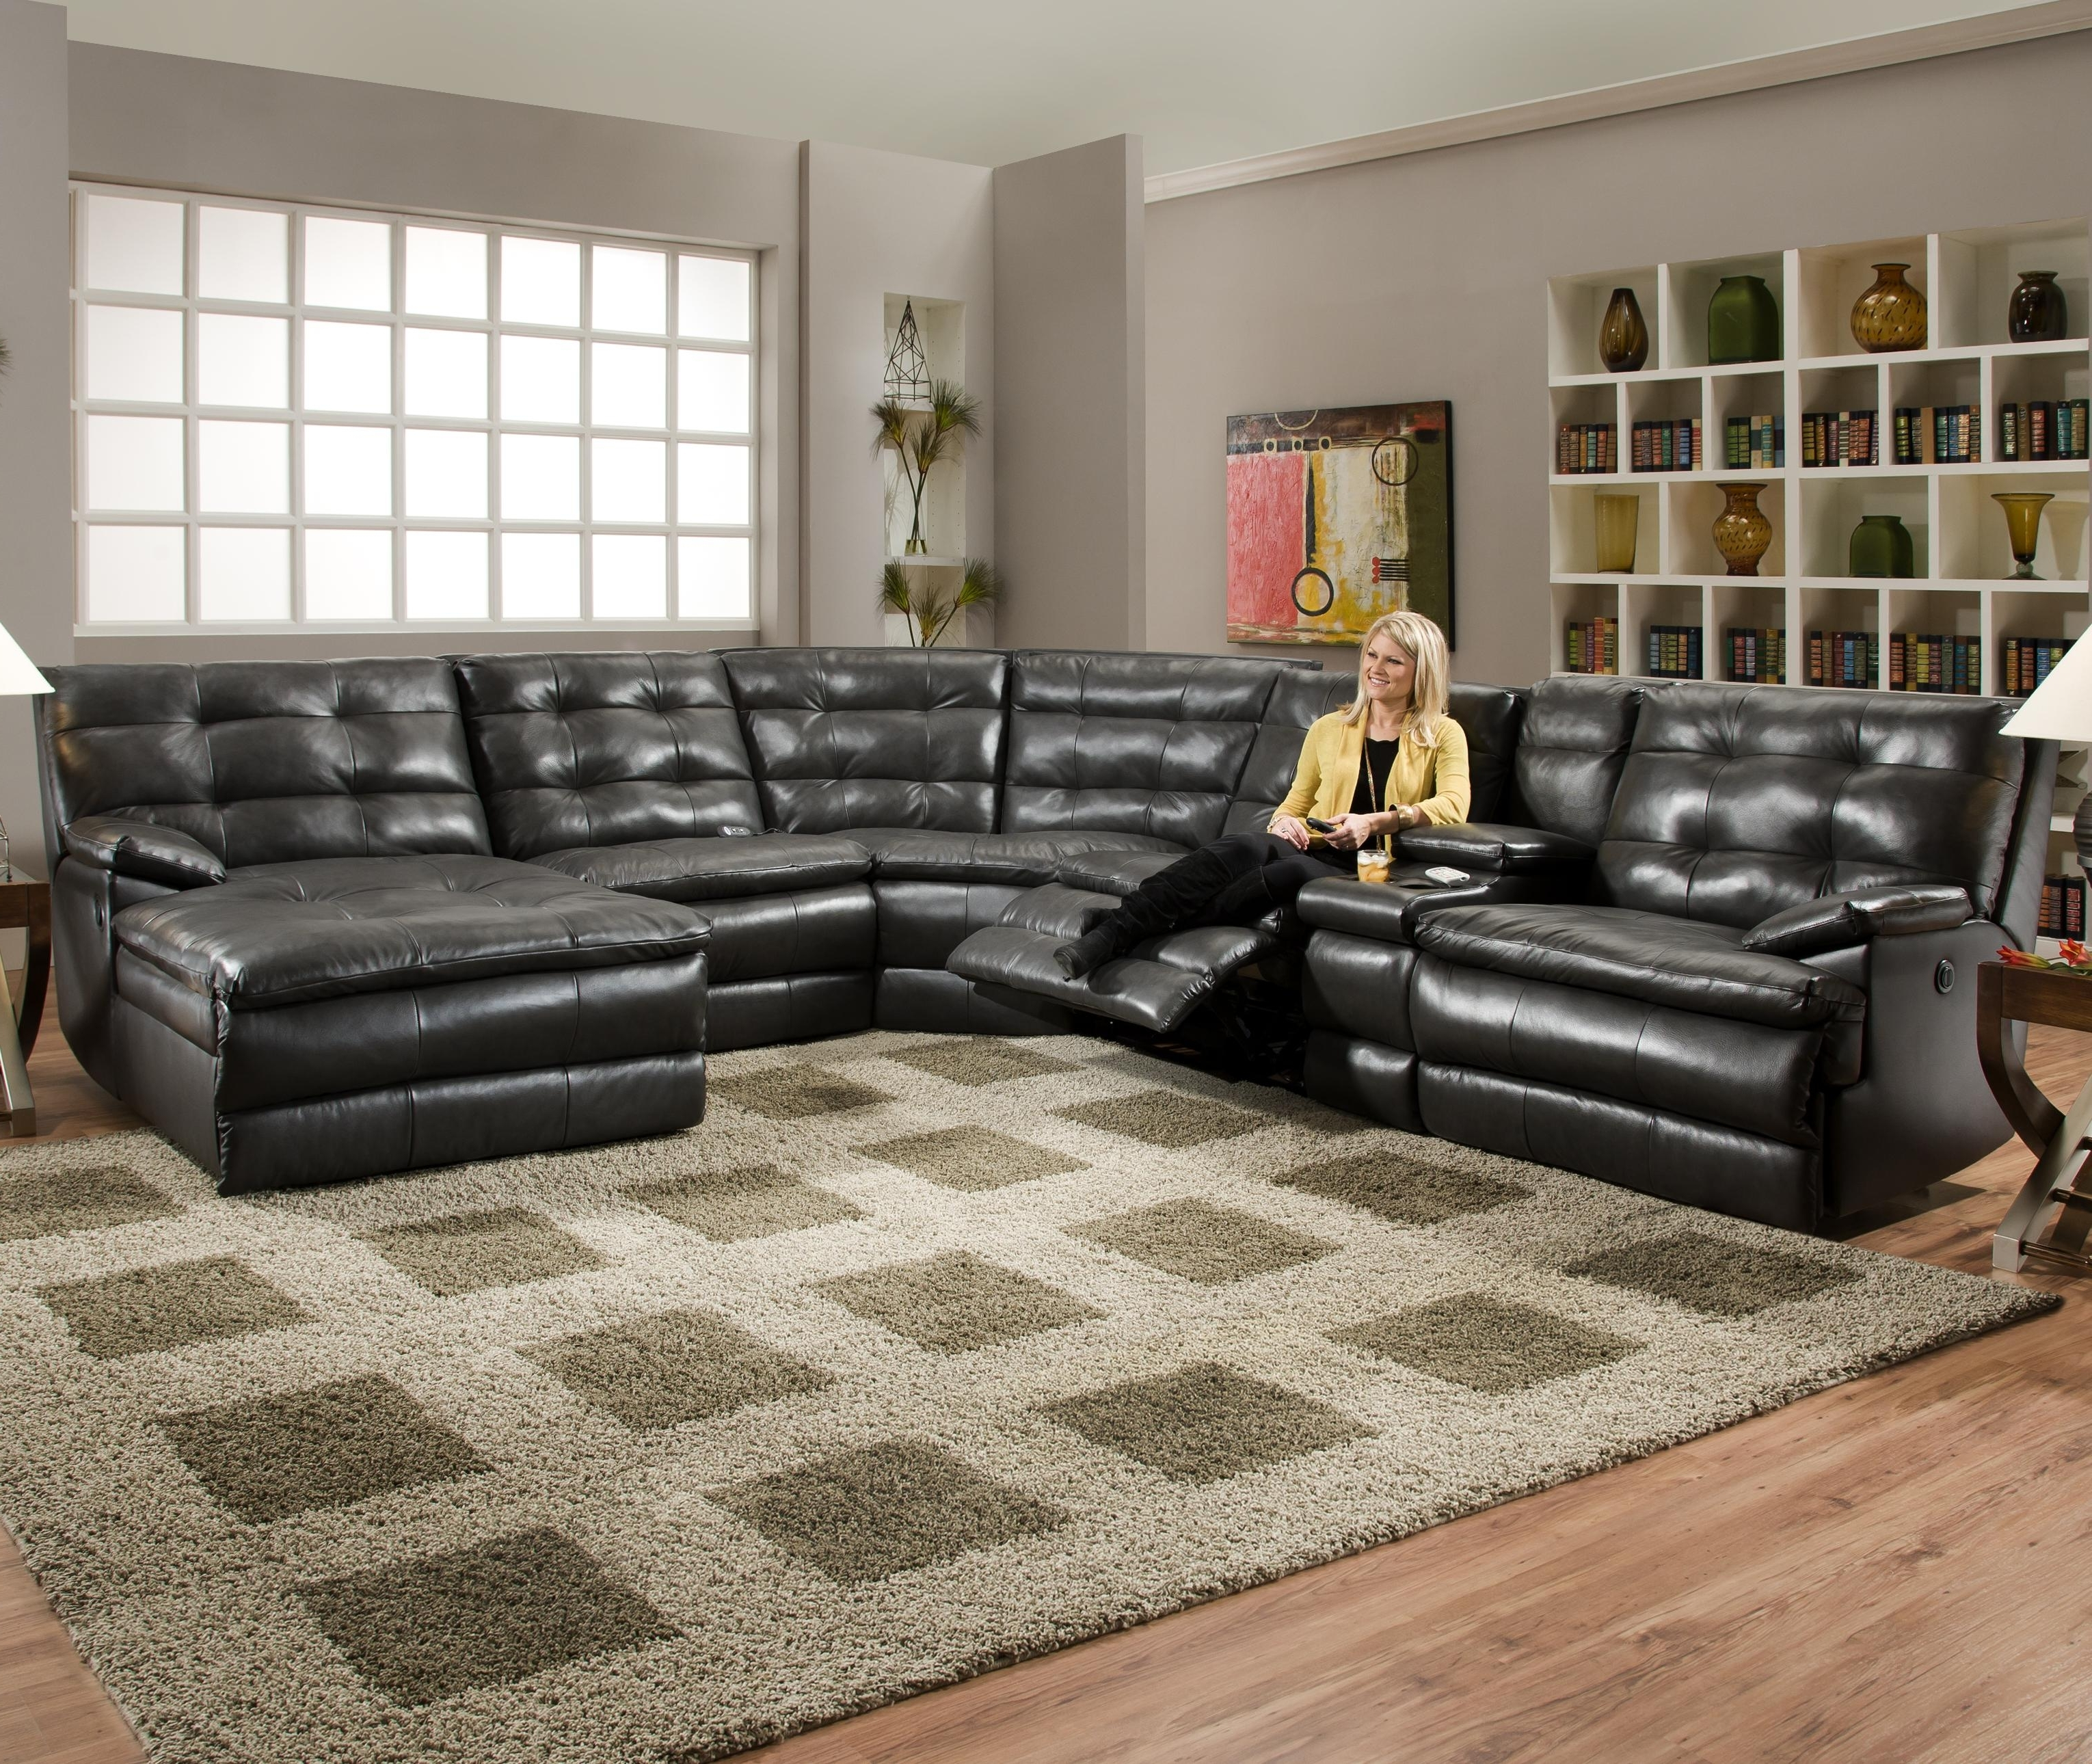 Preferred Fabric Power Reclining Sectional Costco Reclining Sectional Sofas Inside Sectional Sofas At Birmingham Al (View 12 of 20)